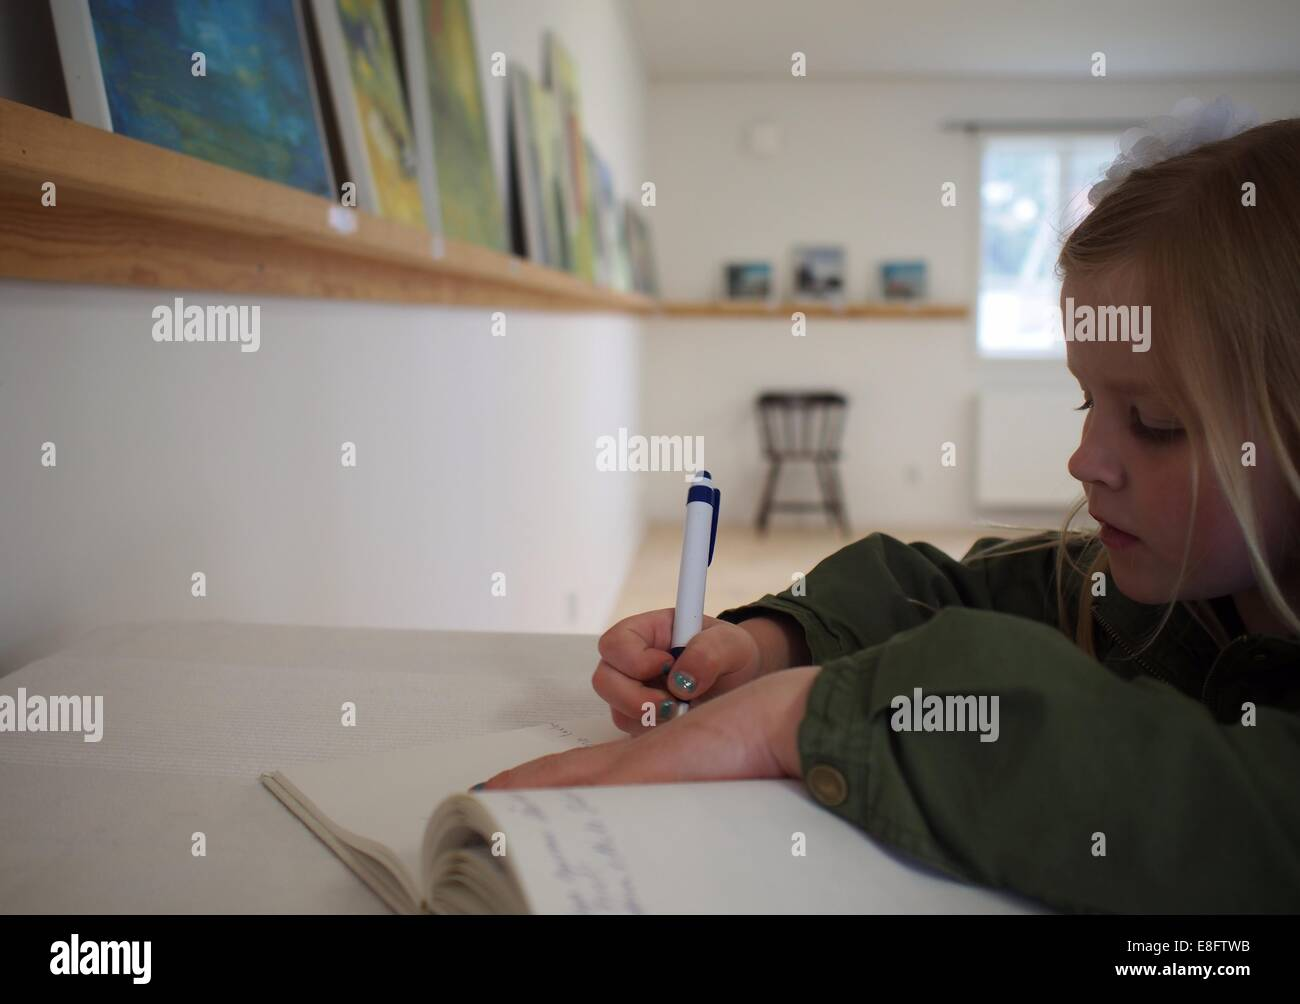 Sweden, Girl (8-9 years) writing in a book - Stock Image